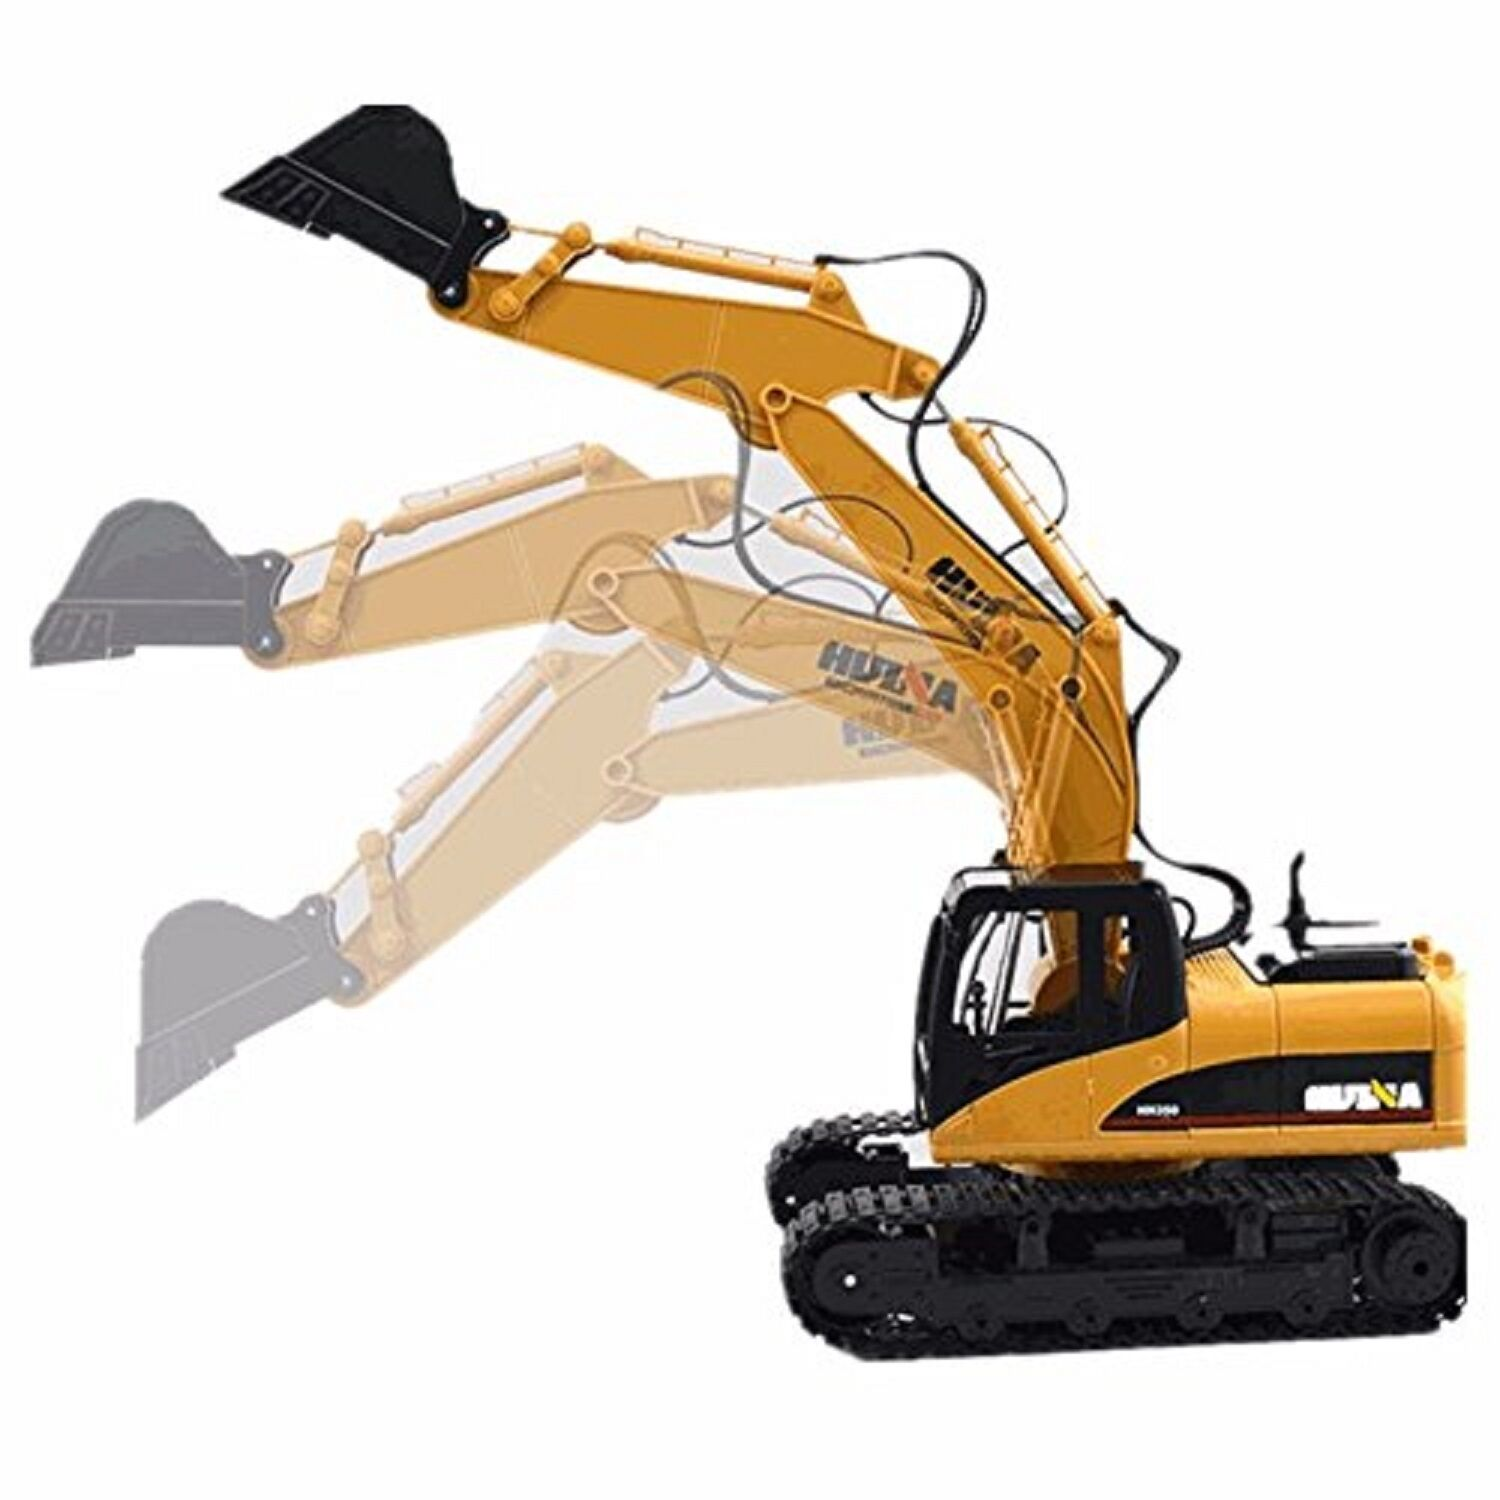 HuiNa Toys 1550 15 Channel 1/14RC 2.4GA Metal Excavator RC Charging Bulldozer